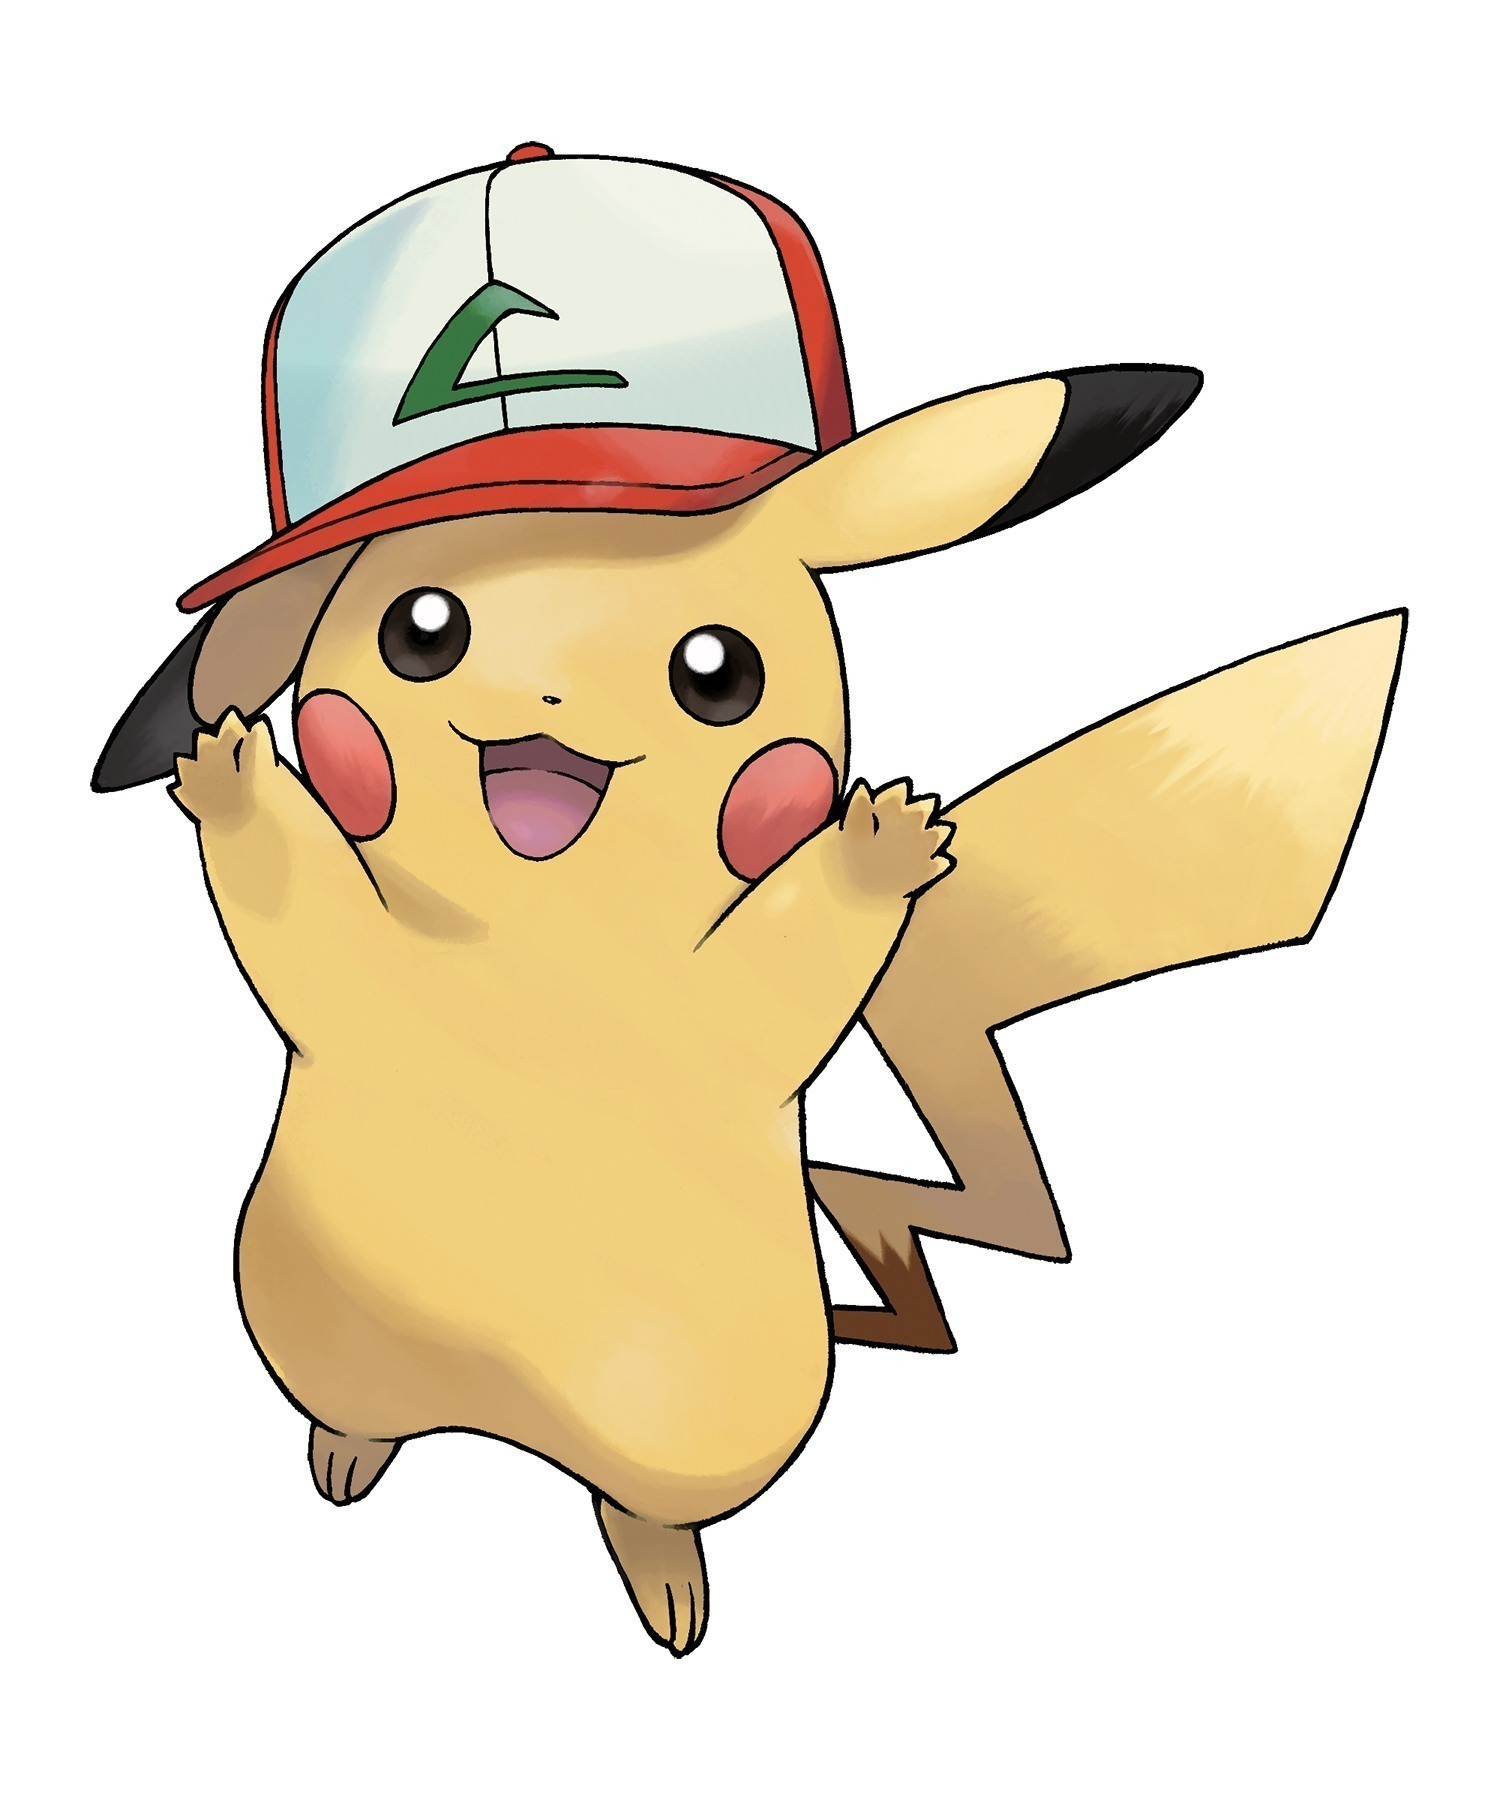 With The Pokemon I Choose You Movie Coming Out It Seems That Original Cap Ashs Pikachu Is Being Distributed Now To Celebrate